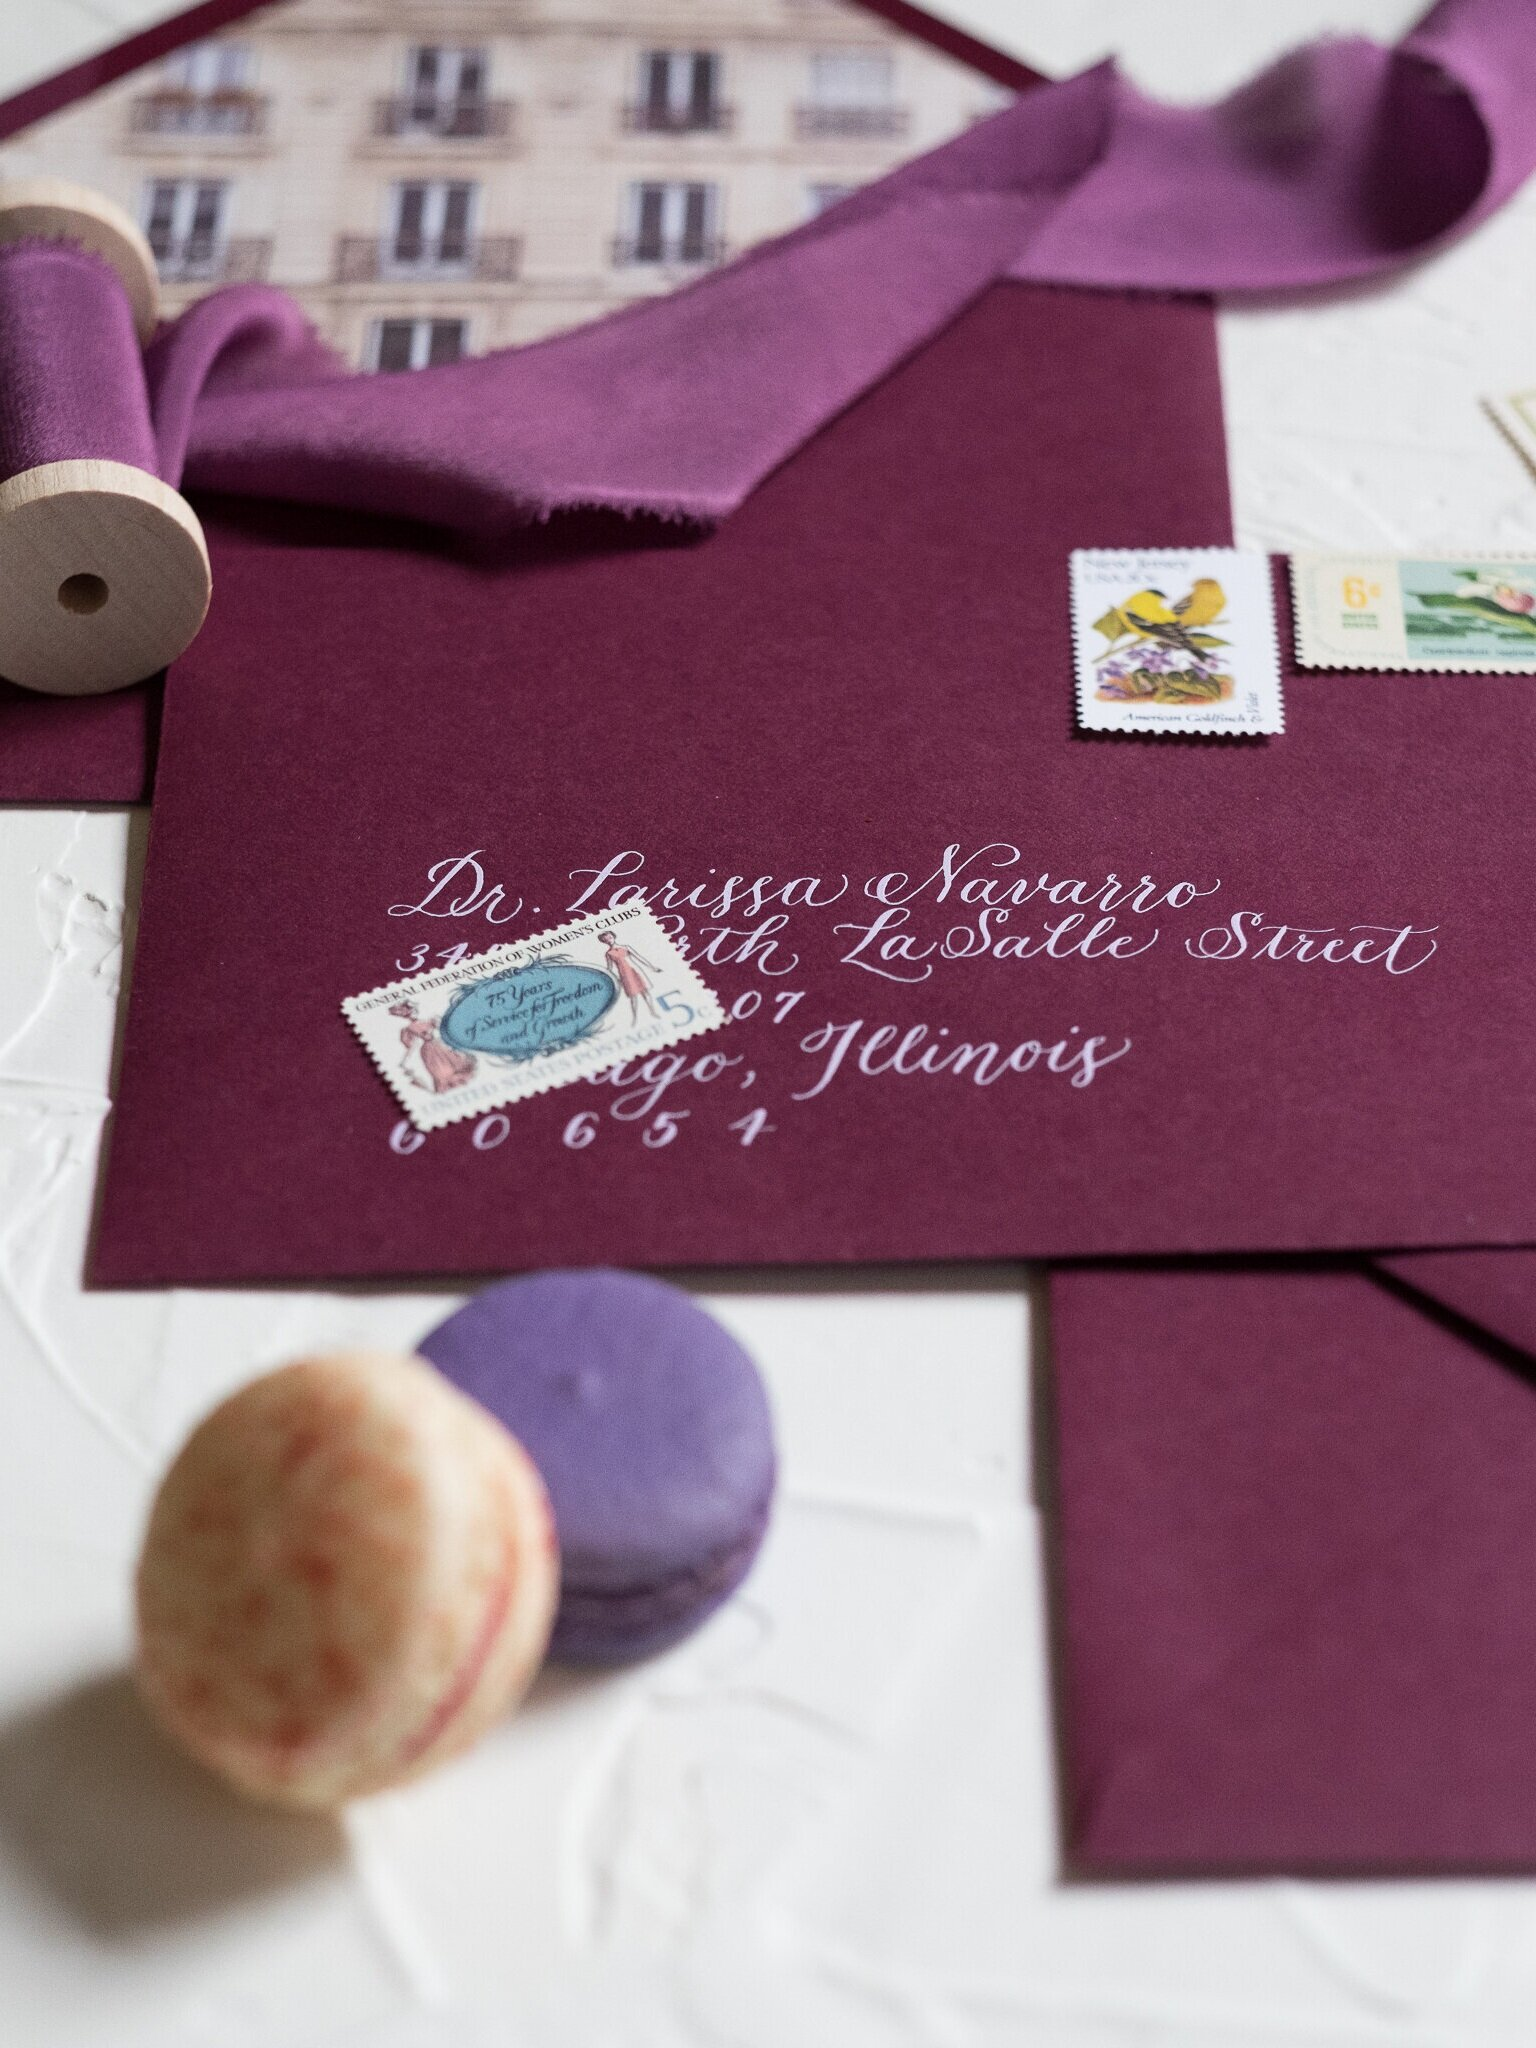 envelopes - for an elegant and inviting first impression